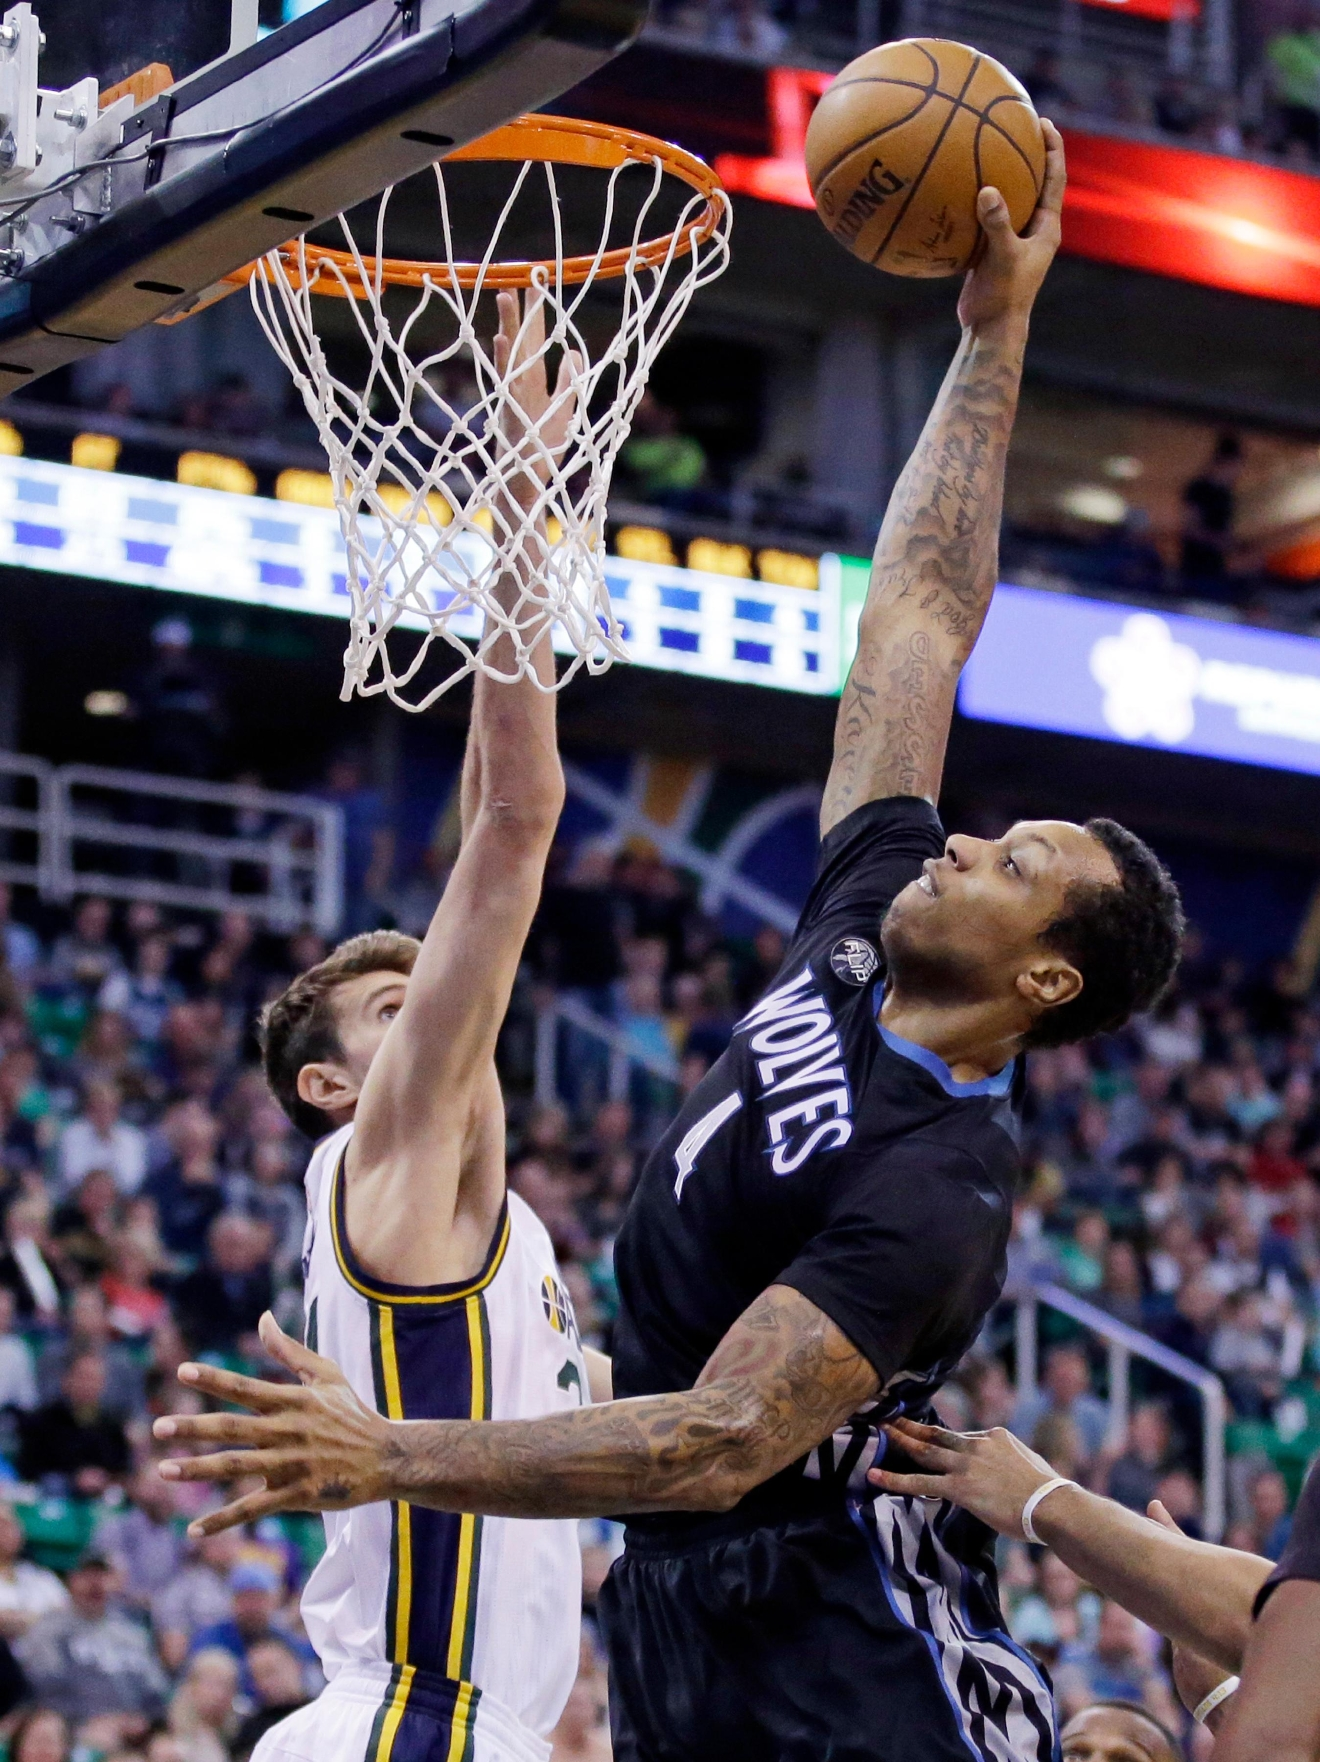 Minnesota Timberwolves forward Greg Smith (4) dunks the ball on Utah Jazz center Jeff Withey, left, during the second quarter of an NBA basketball game Friday, April 1, 2016, in Salt Lake City. (AP Photo/Rick Bowmer)